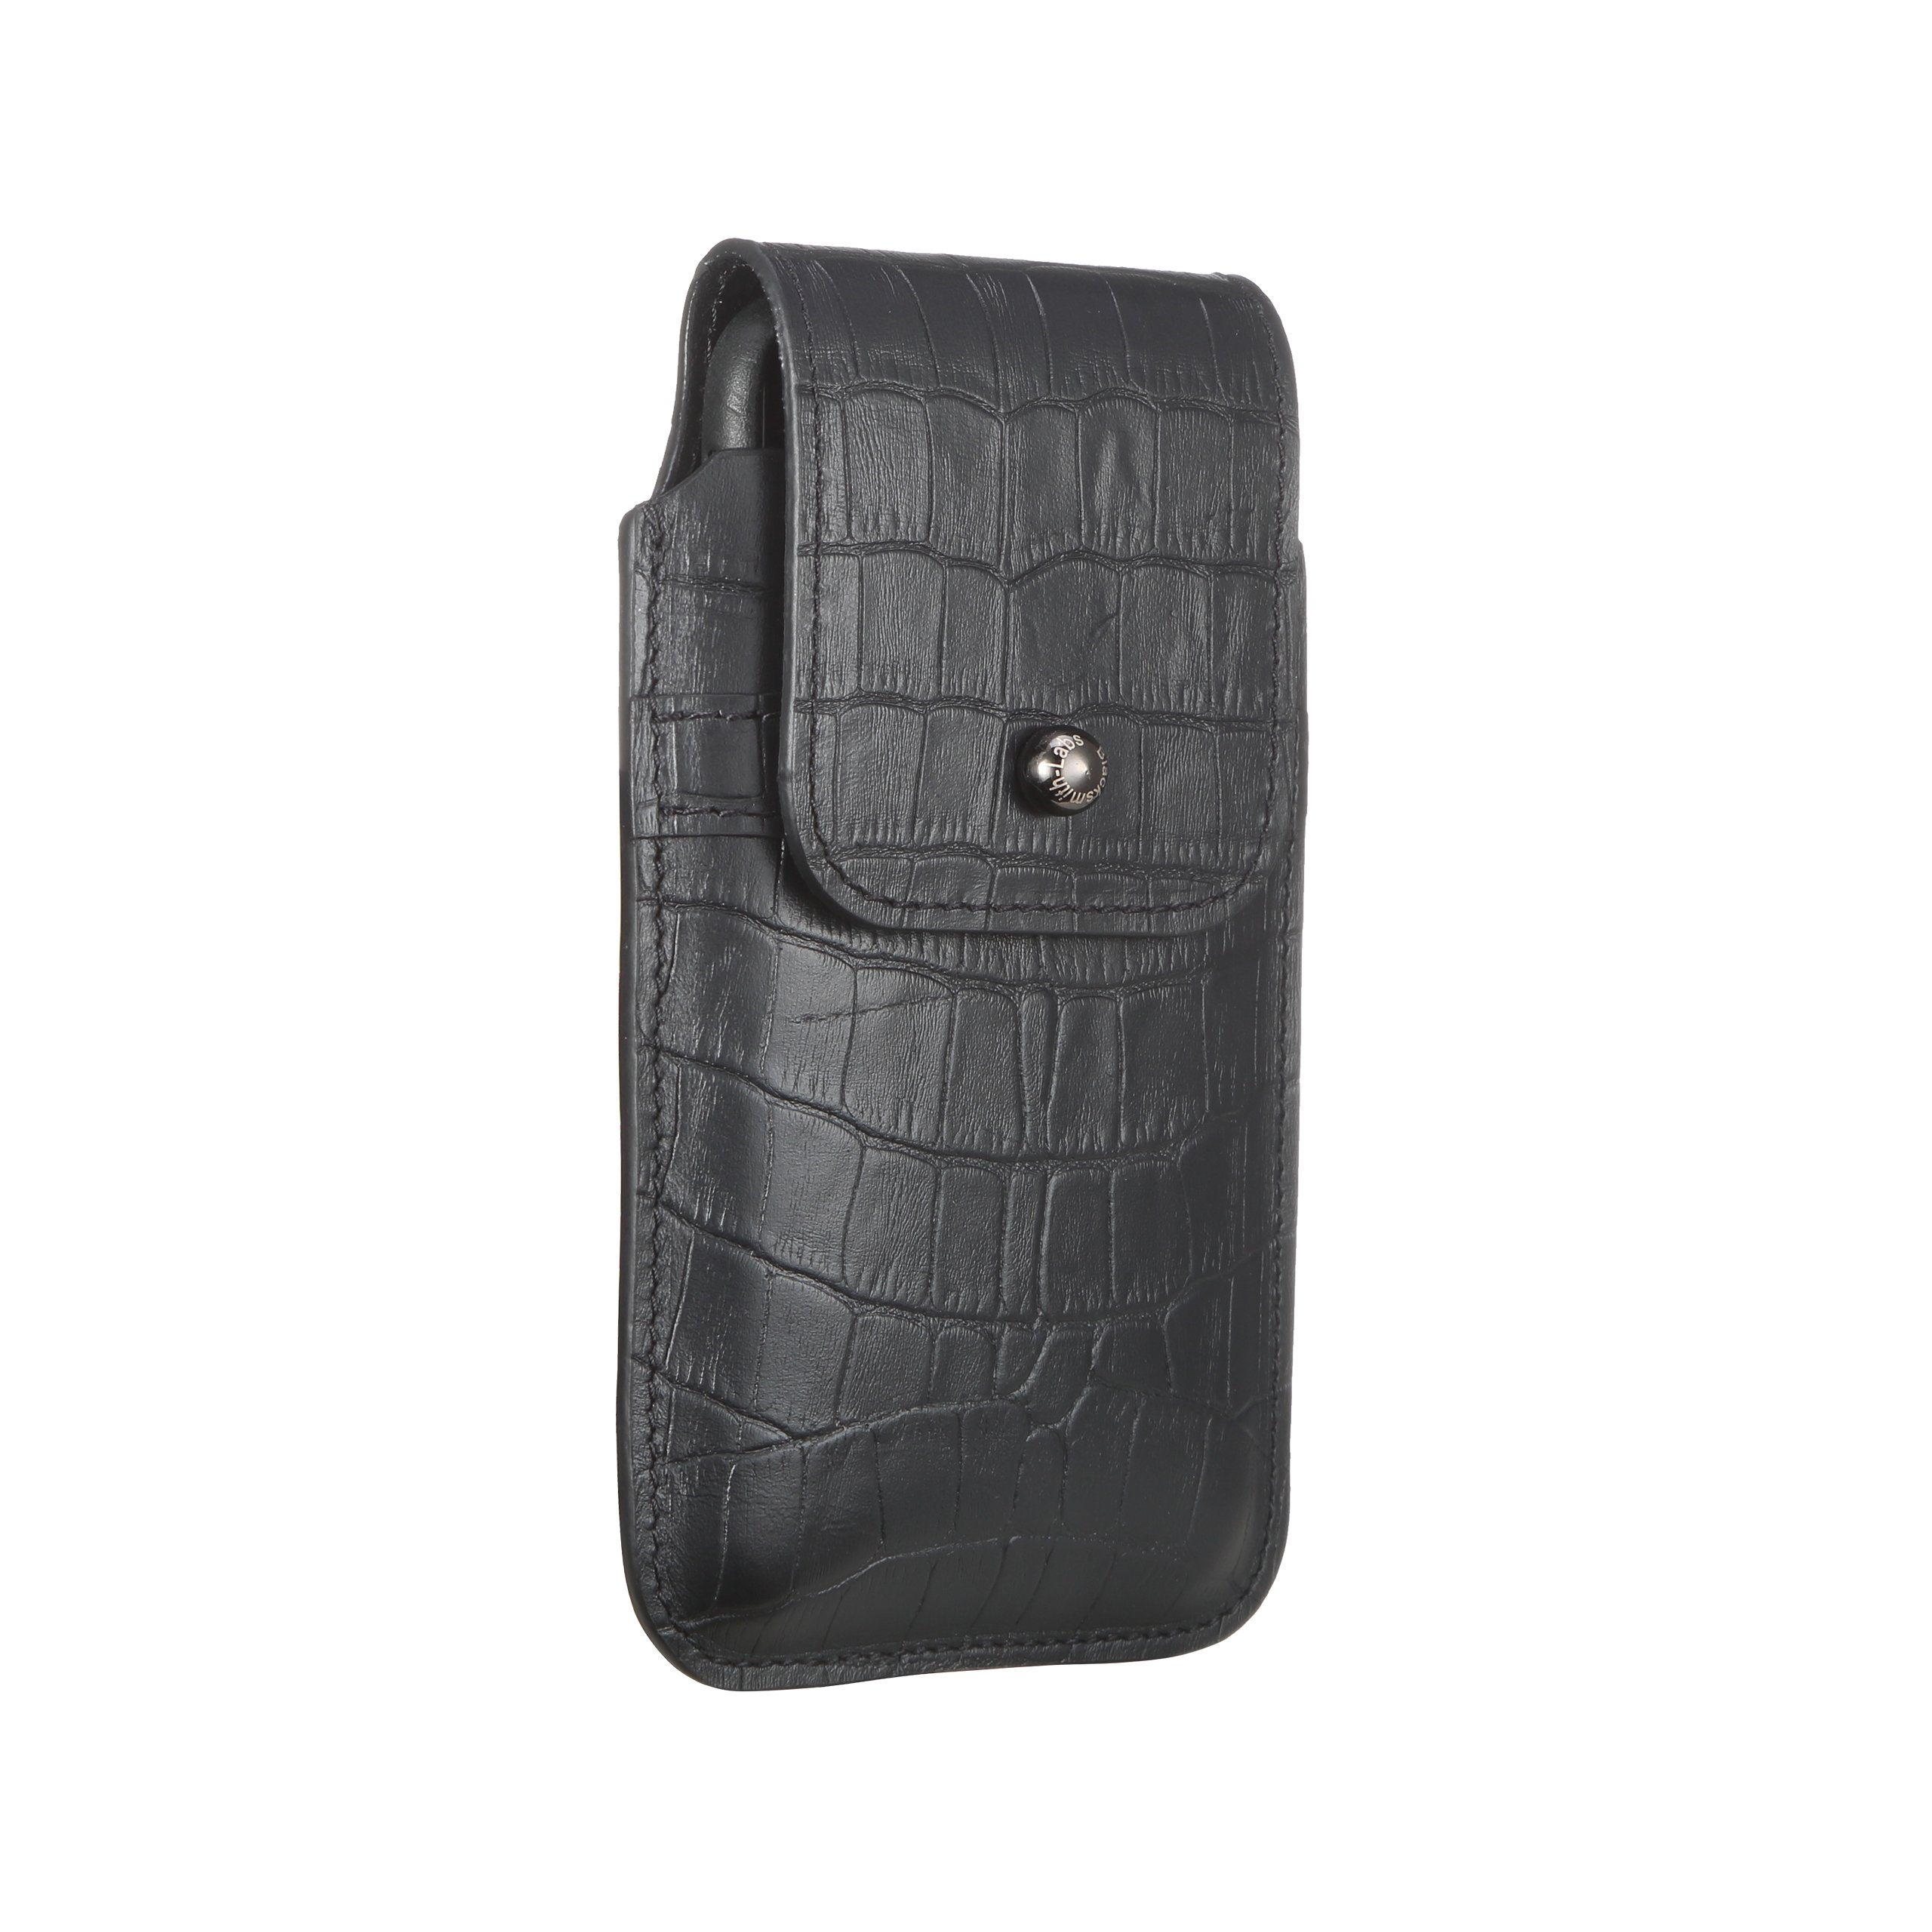 Blacksmith-Labs Barrett 2017 Premium Genuine Leather Swivel Belt Clip Holster for Apple iPhone X for use with no cases or covers - Black Croc Embossed Cowhide/Gunmetal Belt Clip